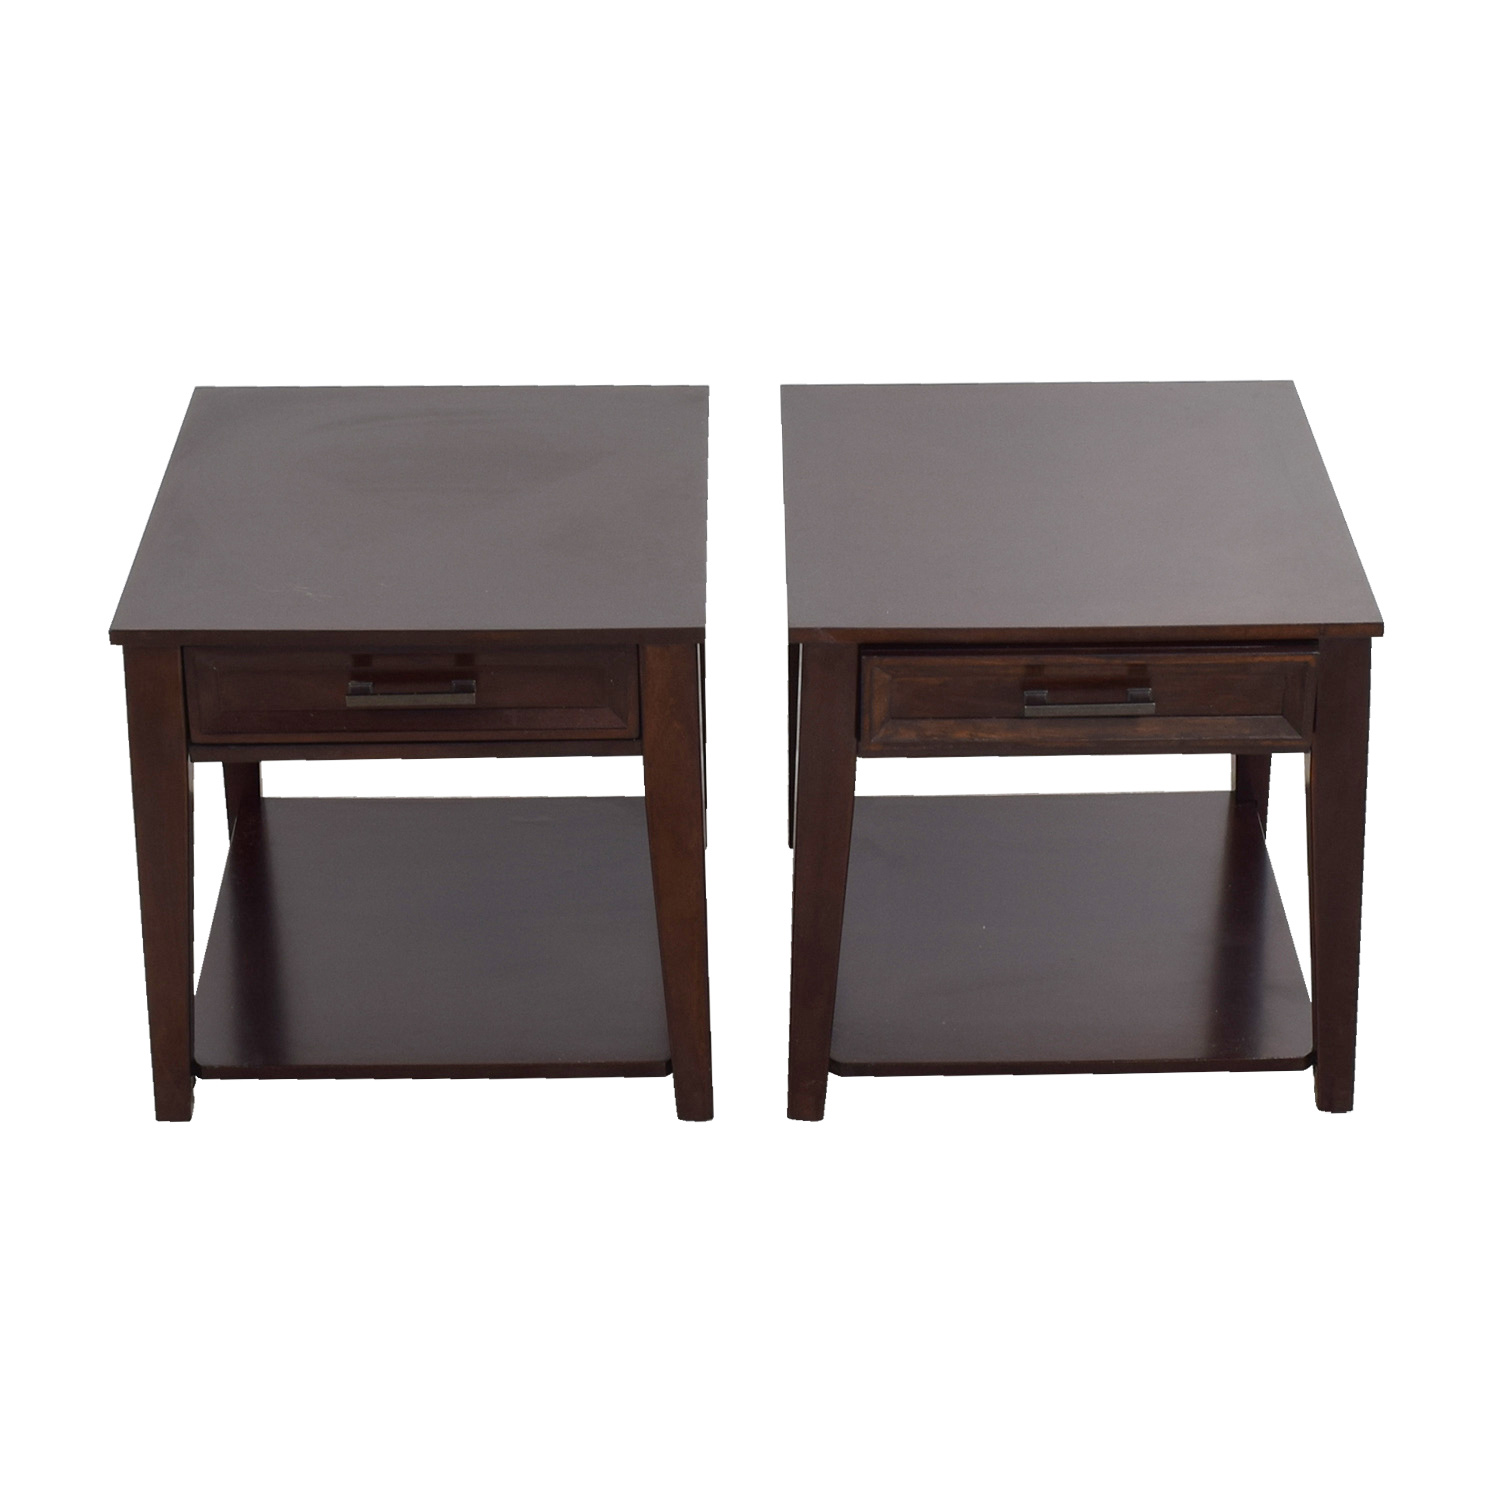 Single Drawer Dark Cherry Night Stands for sale